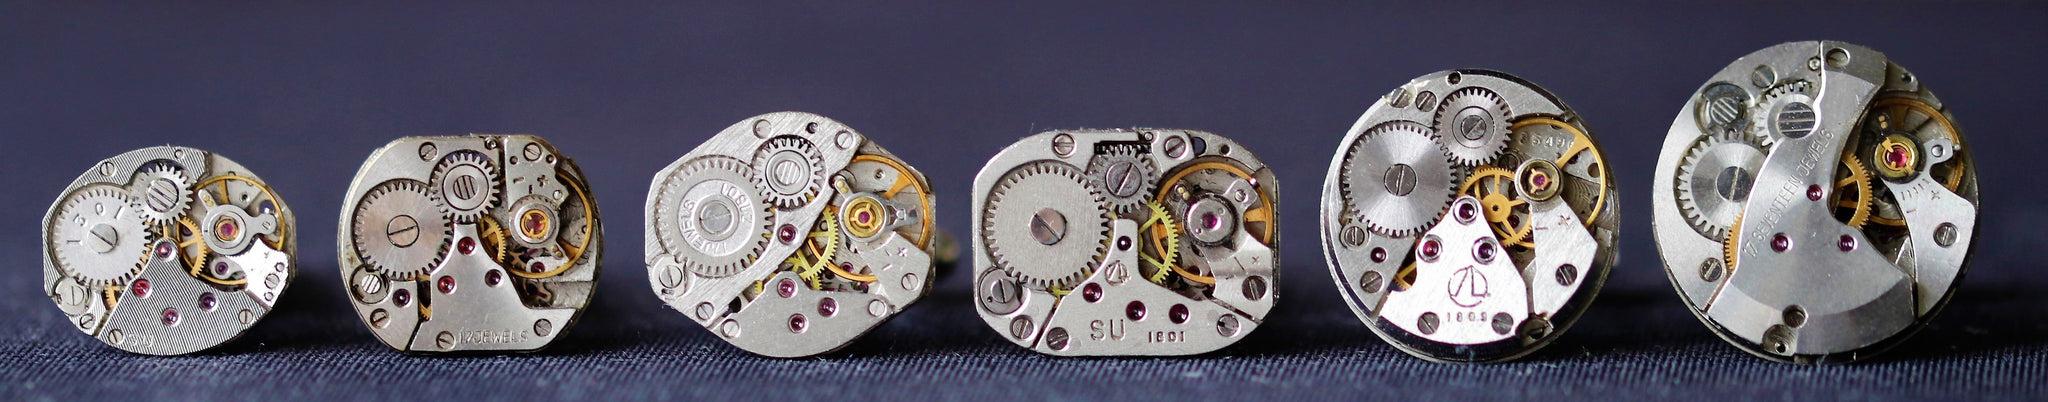 Round Watch Movement Cuff Links